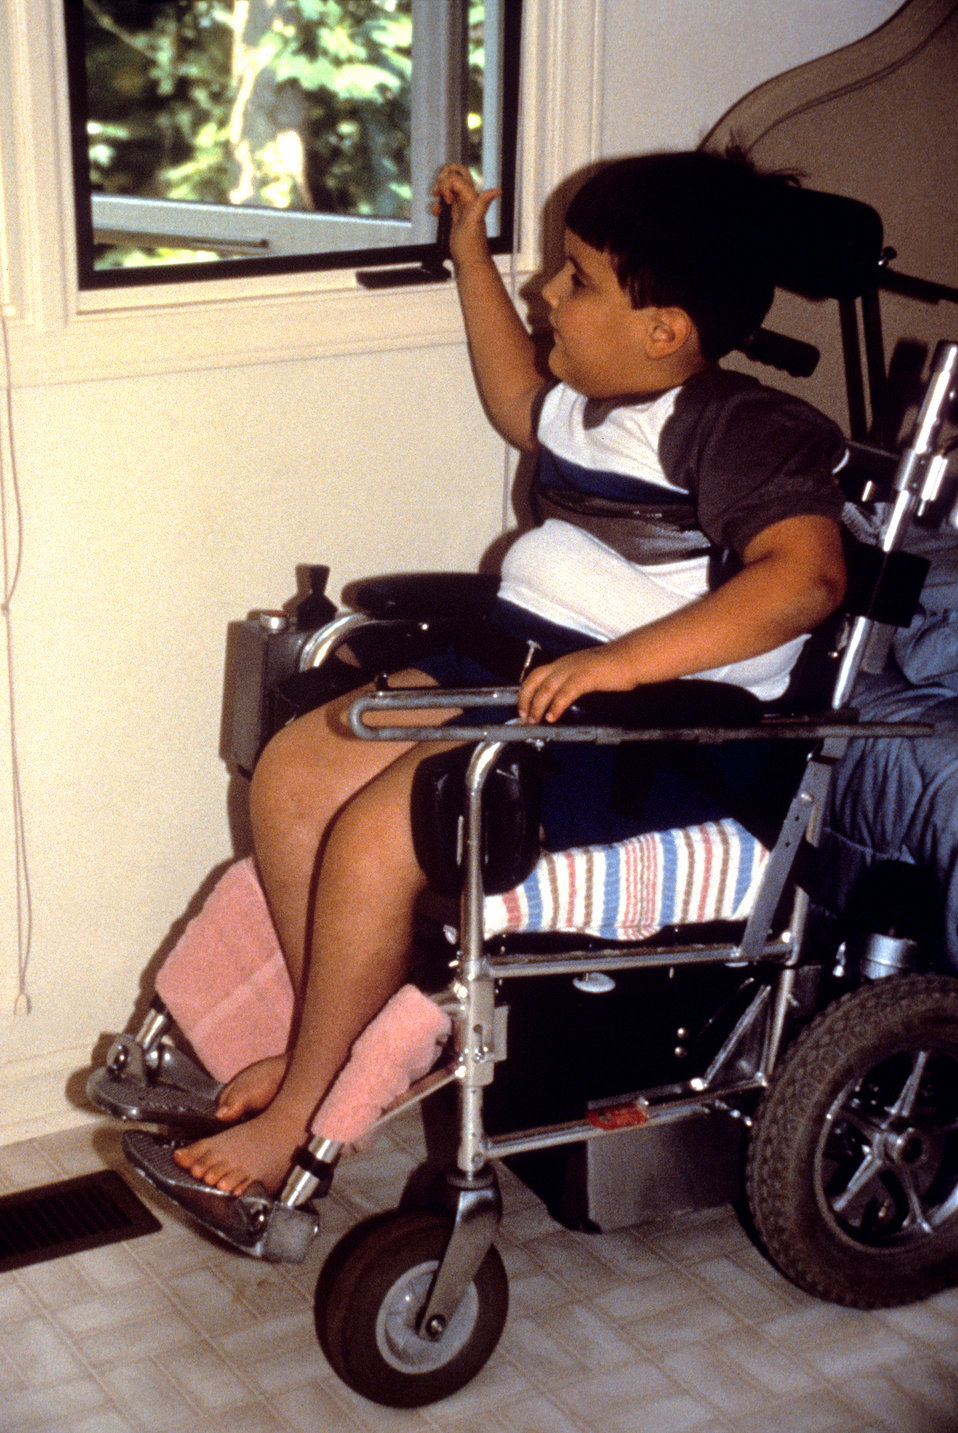 In this 1995 image, a young child who was seated in a wheelchair was operating a manual hand crank on a casement window.  Because the crank